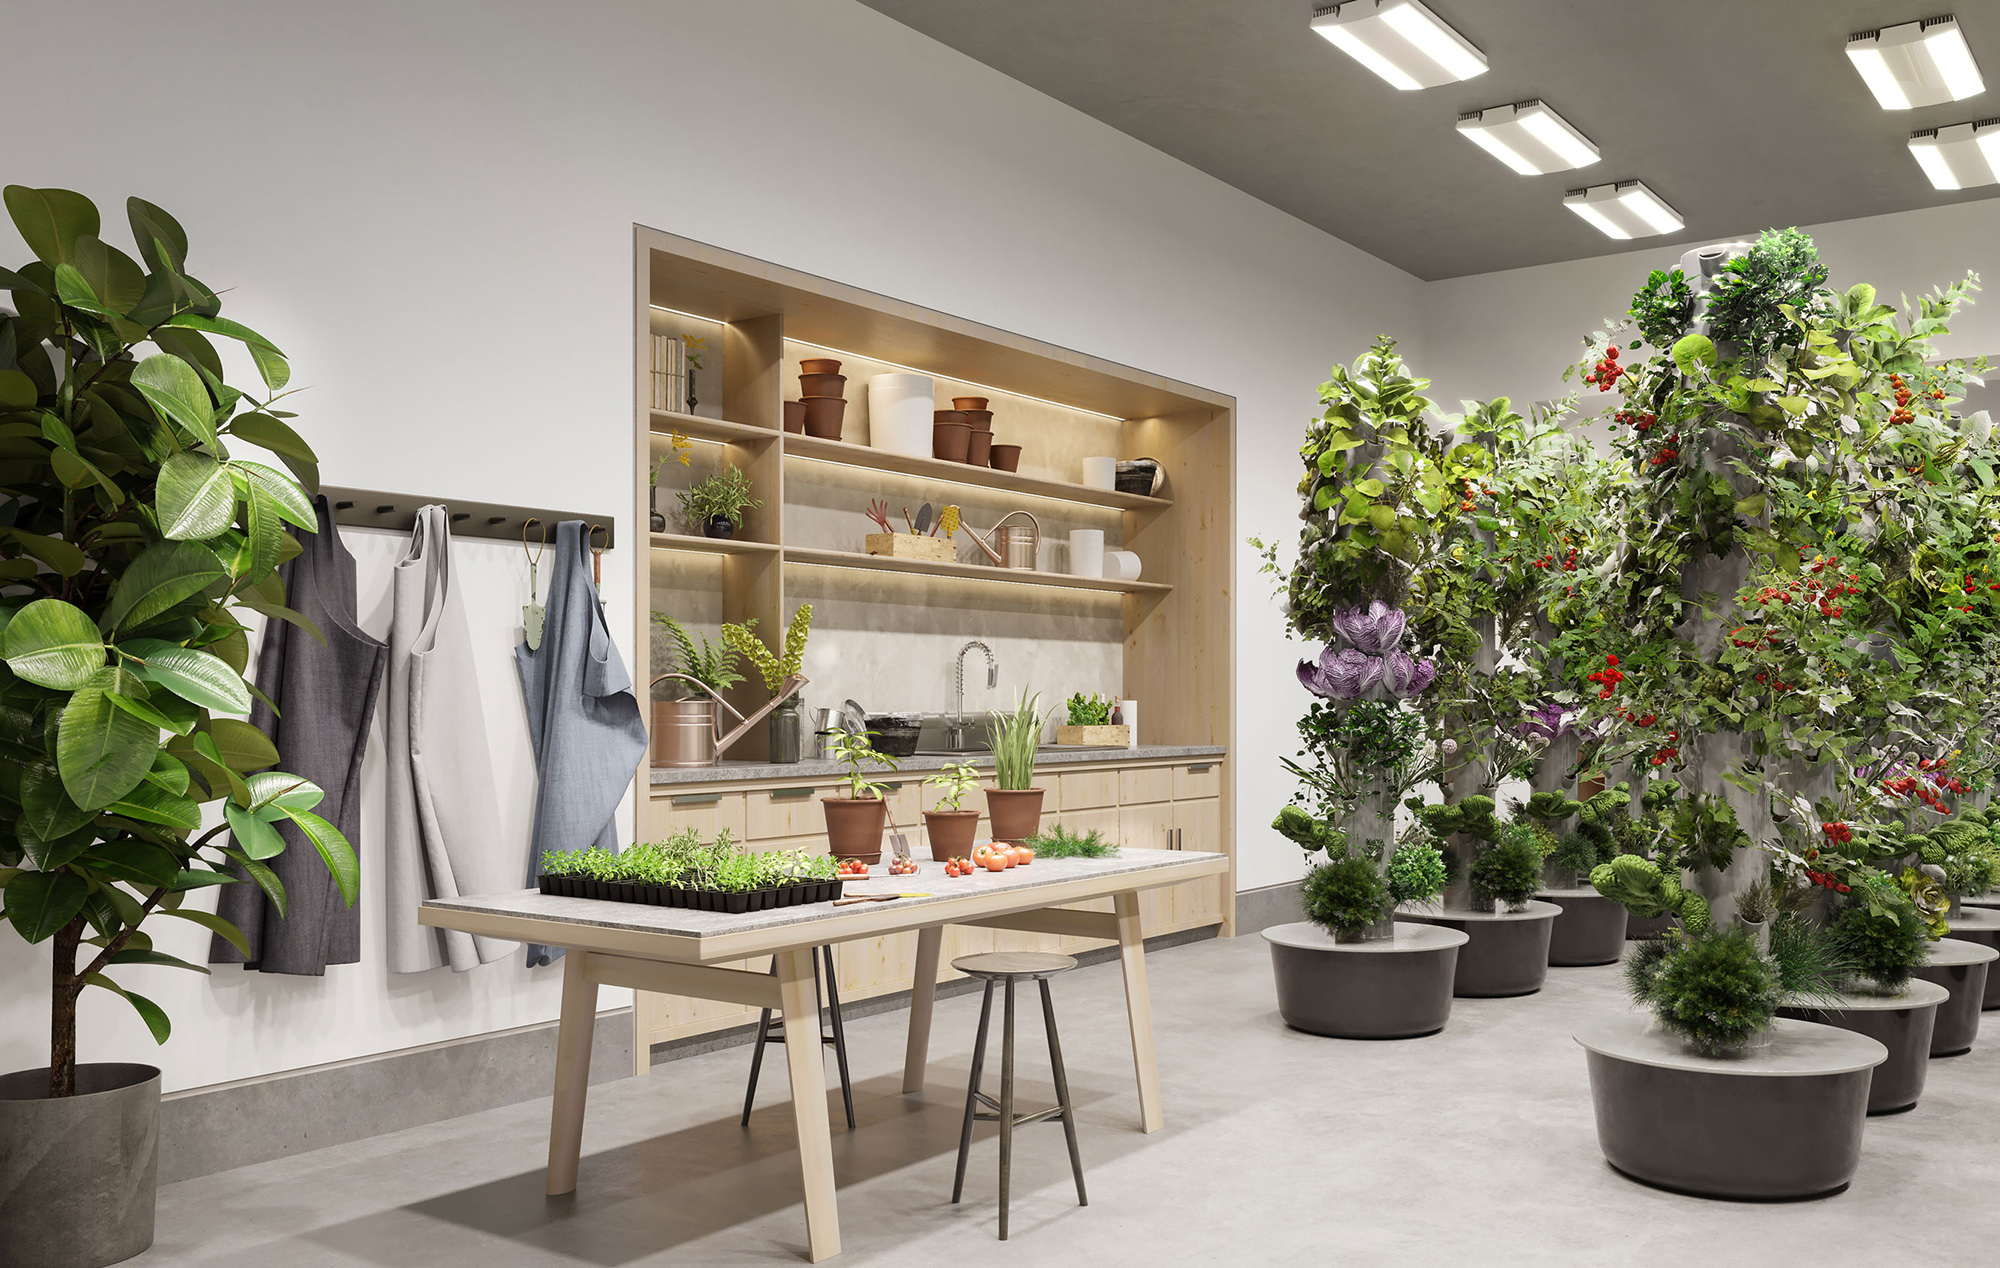 NYC Residences with Communal Indoor Gardening Space